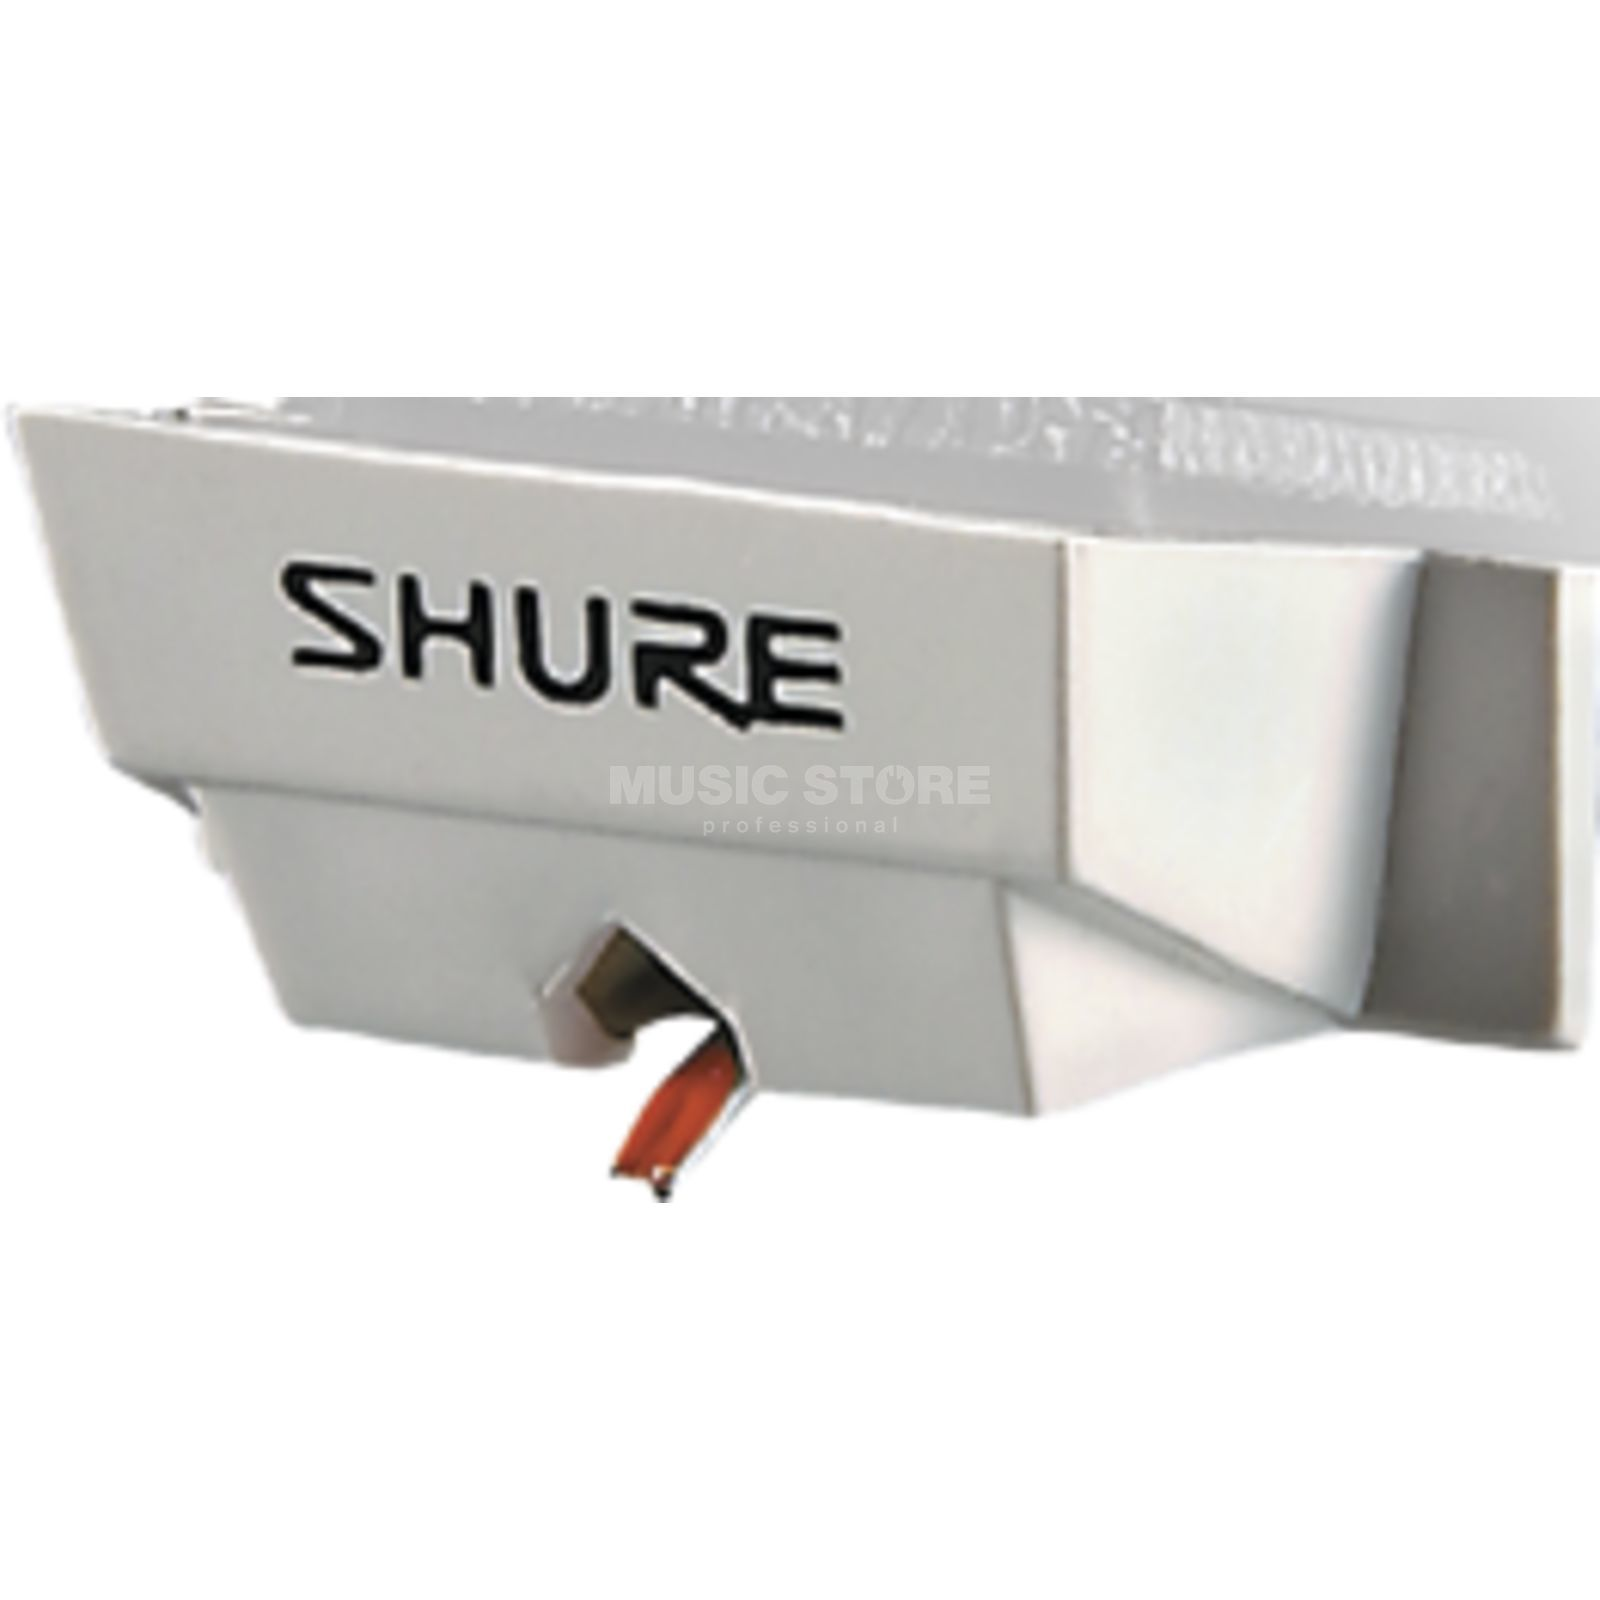 Shure N35X / Replacament Needle  for M35X Immagine prodotto